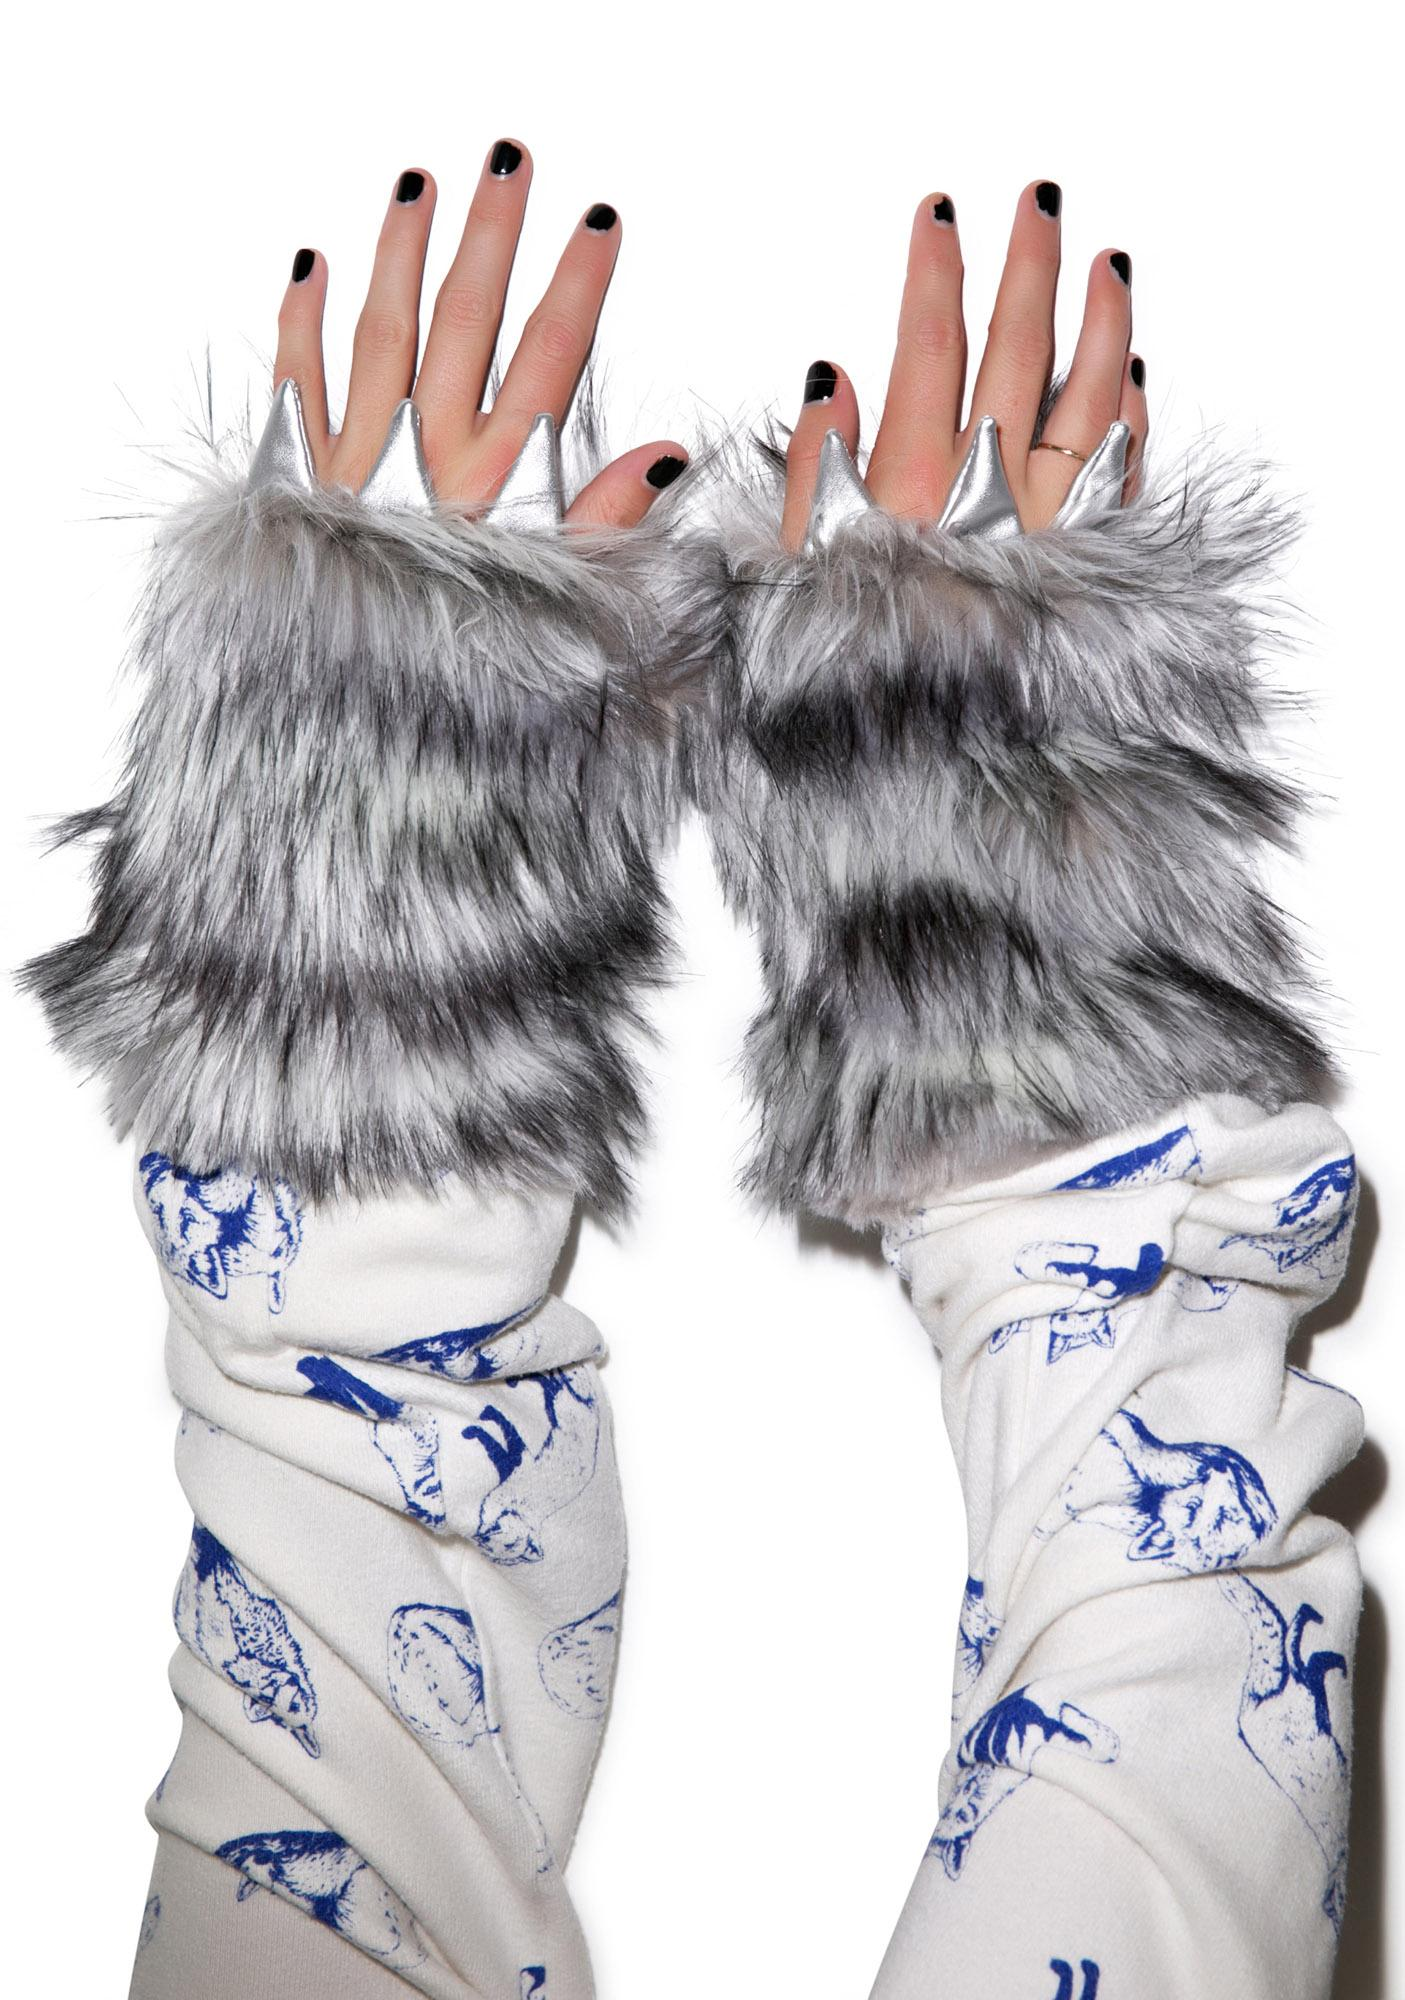 J Valentine Big Bad Wolf Gloves